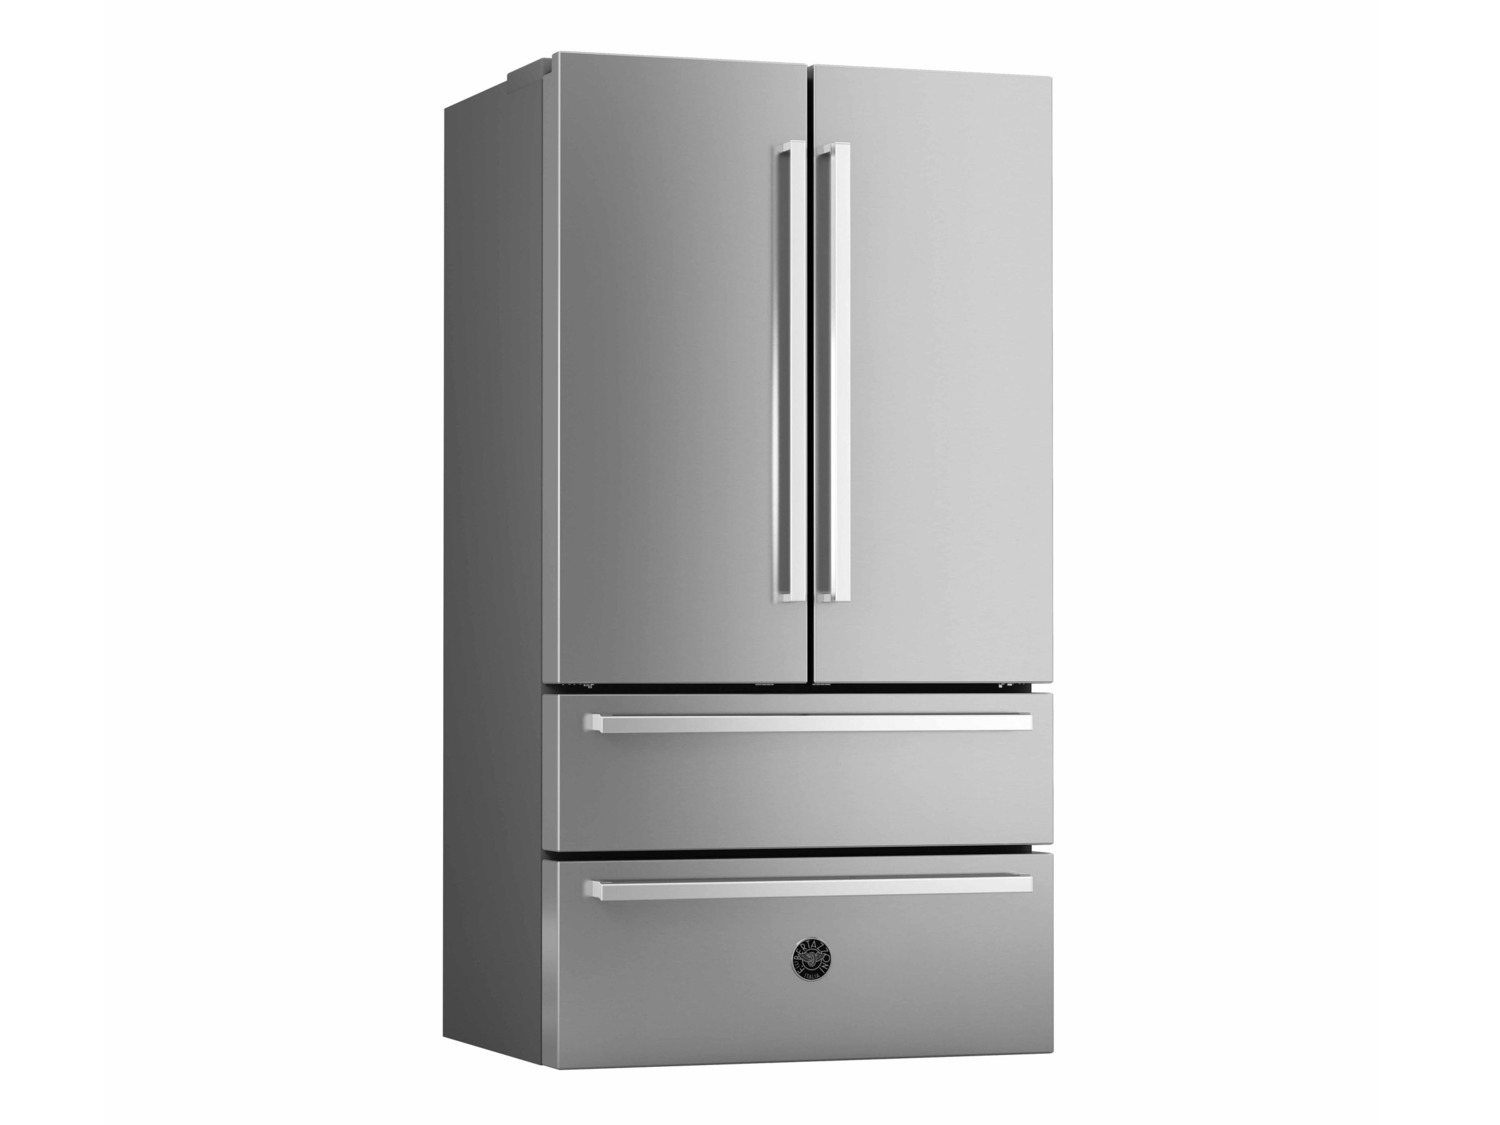 BERTAZZONI French Door Refrigerators